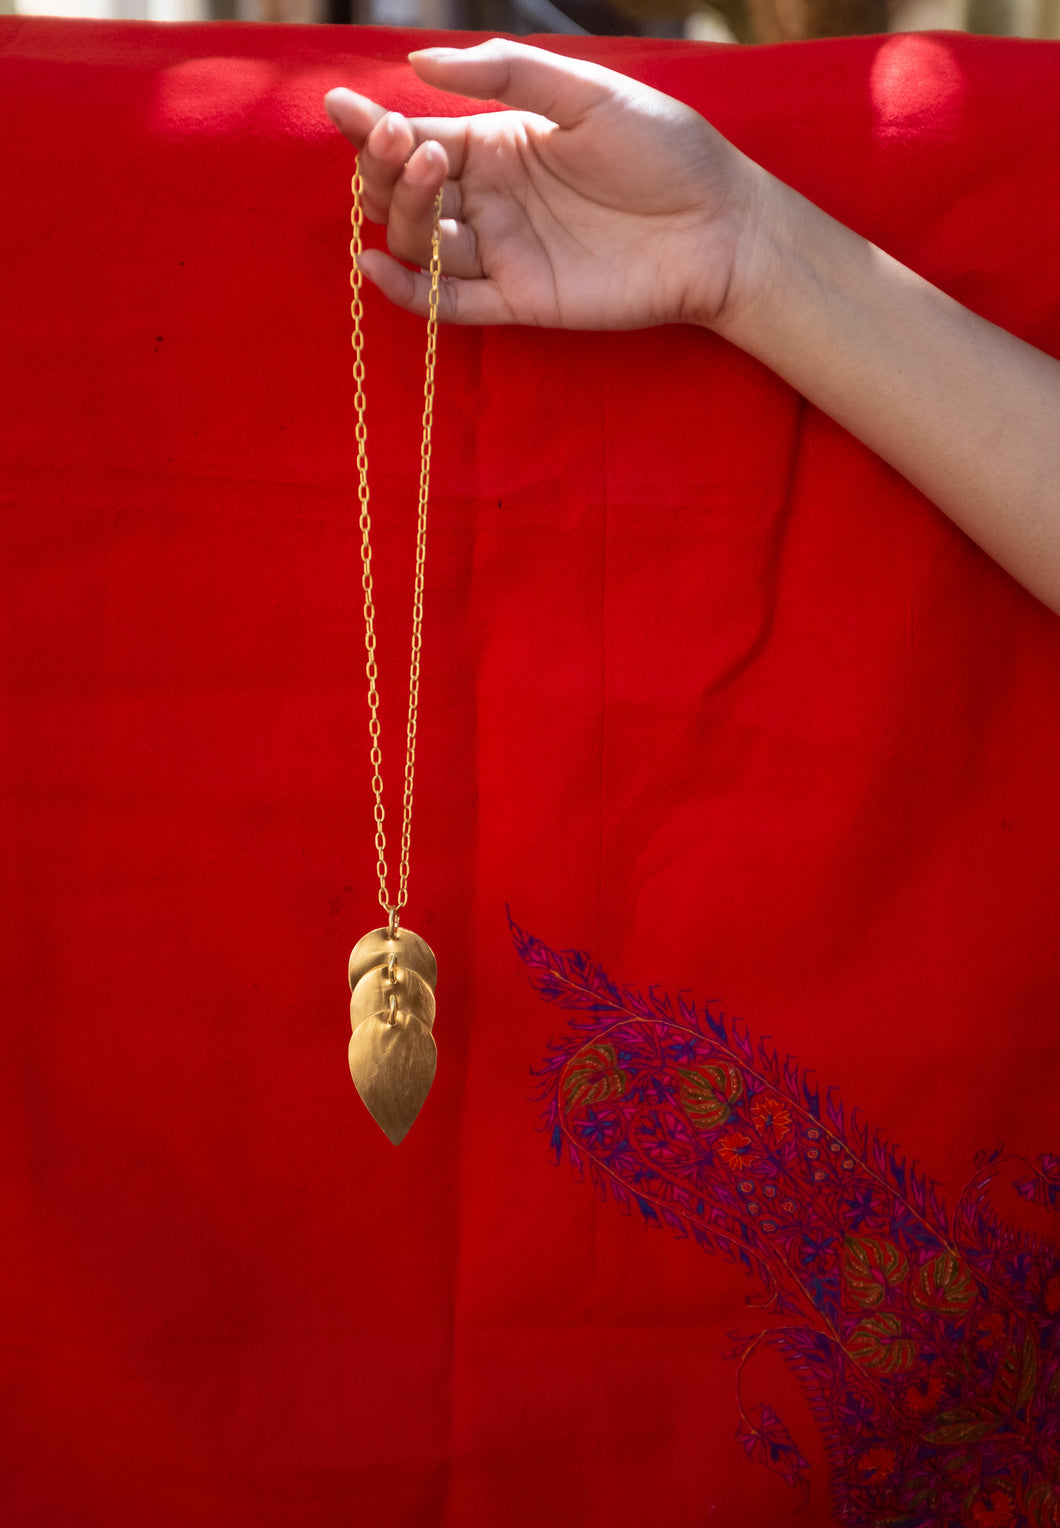 Drop Necklace in Gold - Khwab Studio